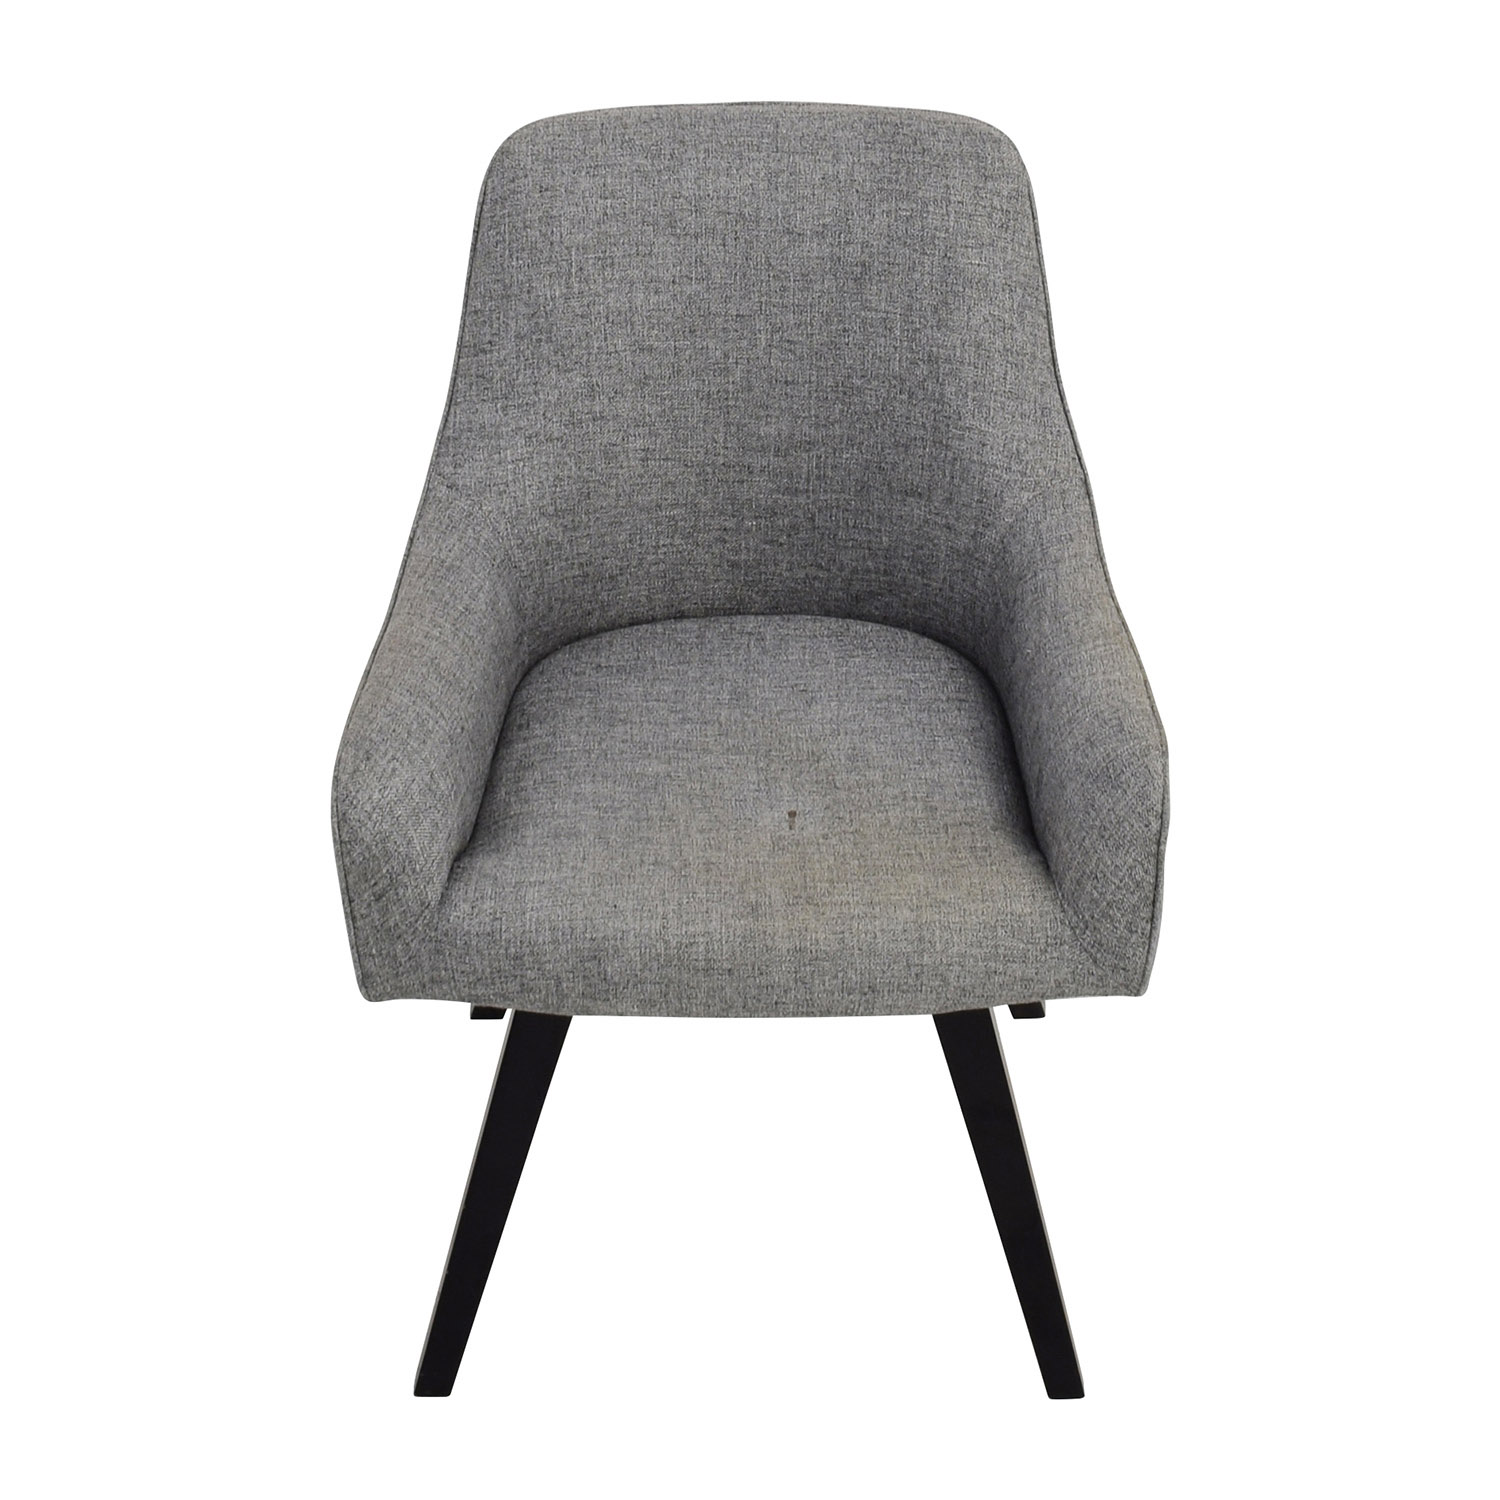 CB2 CB2 Grey Rounded Accent Chair for sale